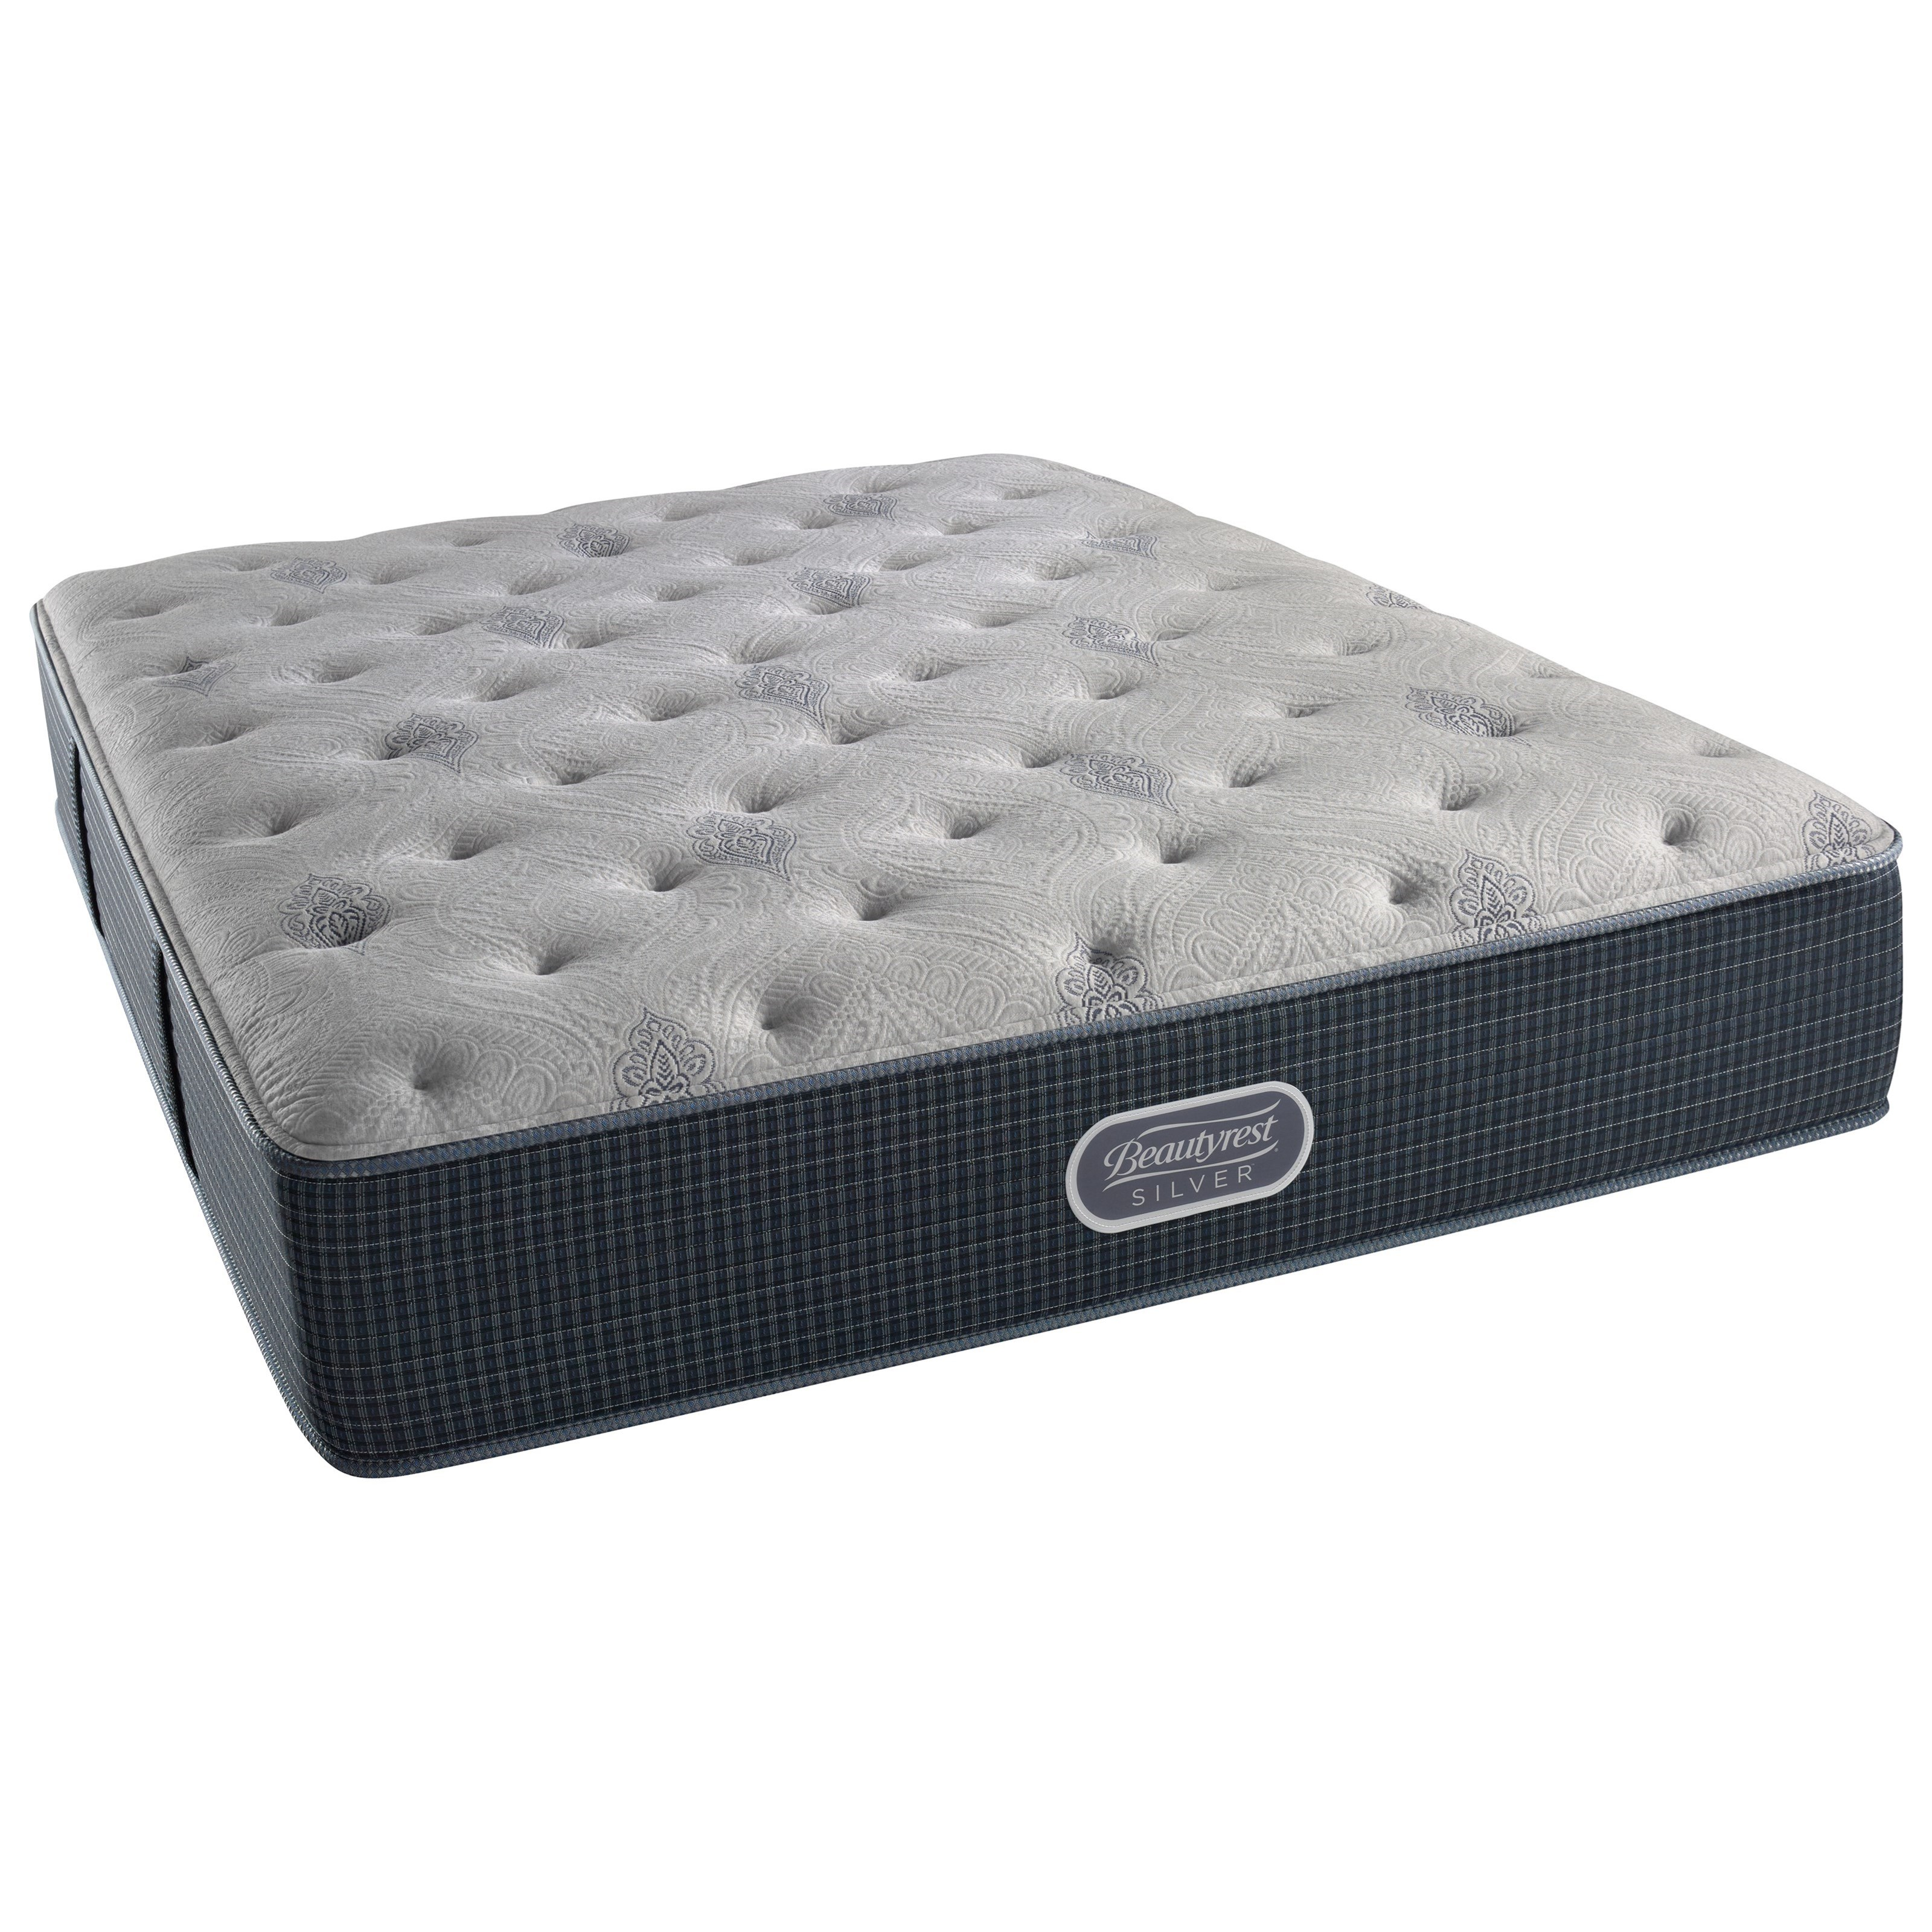 "Simmons Kingston Island King 13.5"" Plush Pocketed Coil Mattress - Item Number: 700600248-1060"